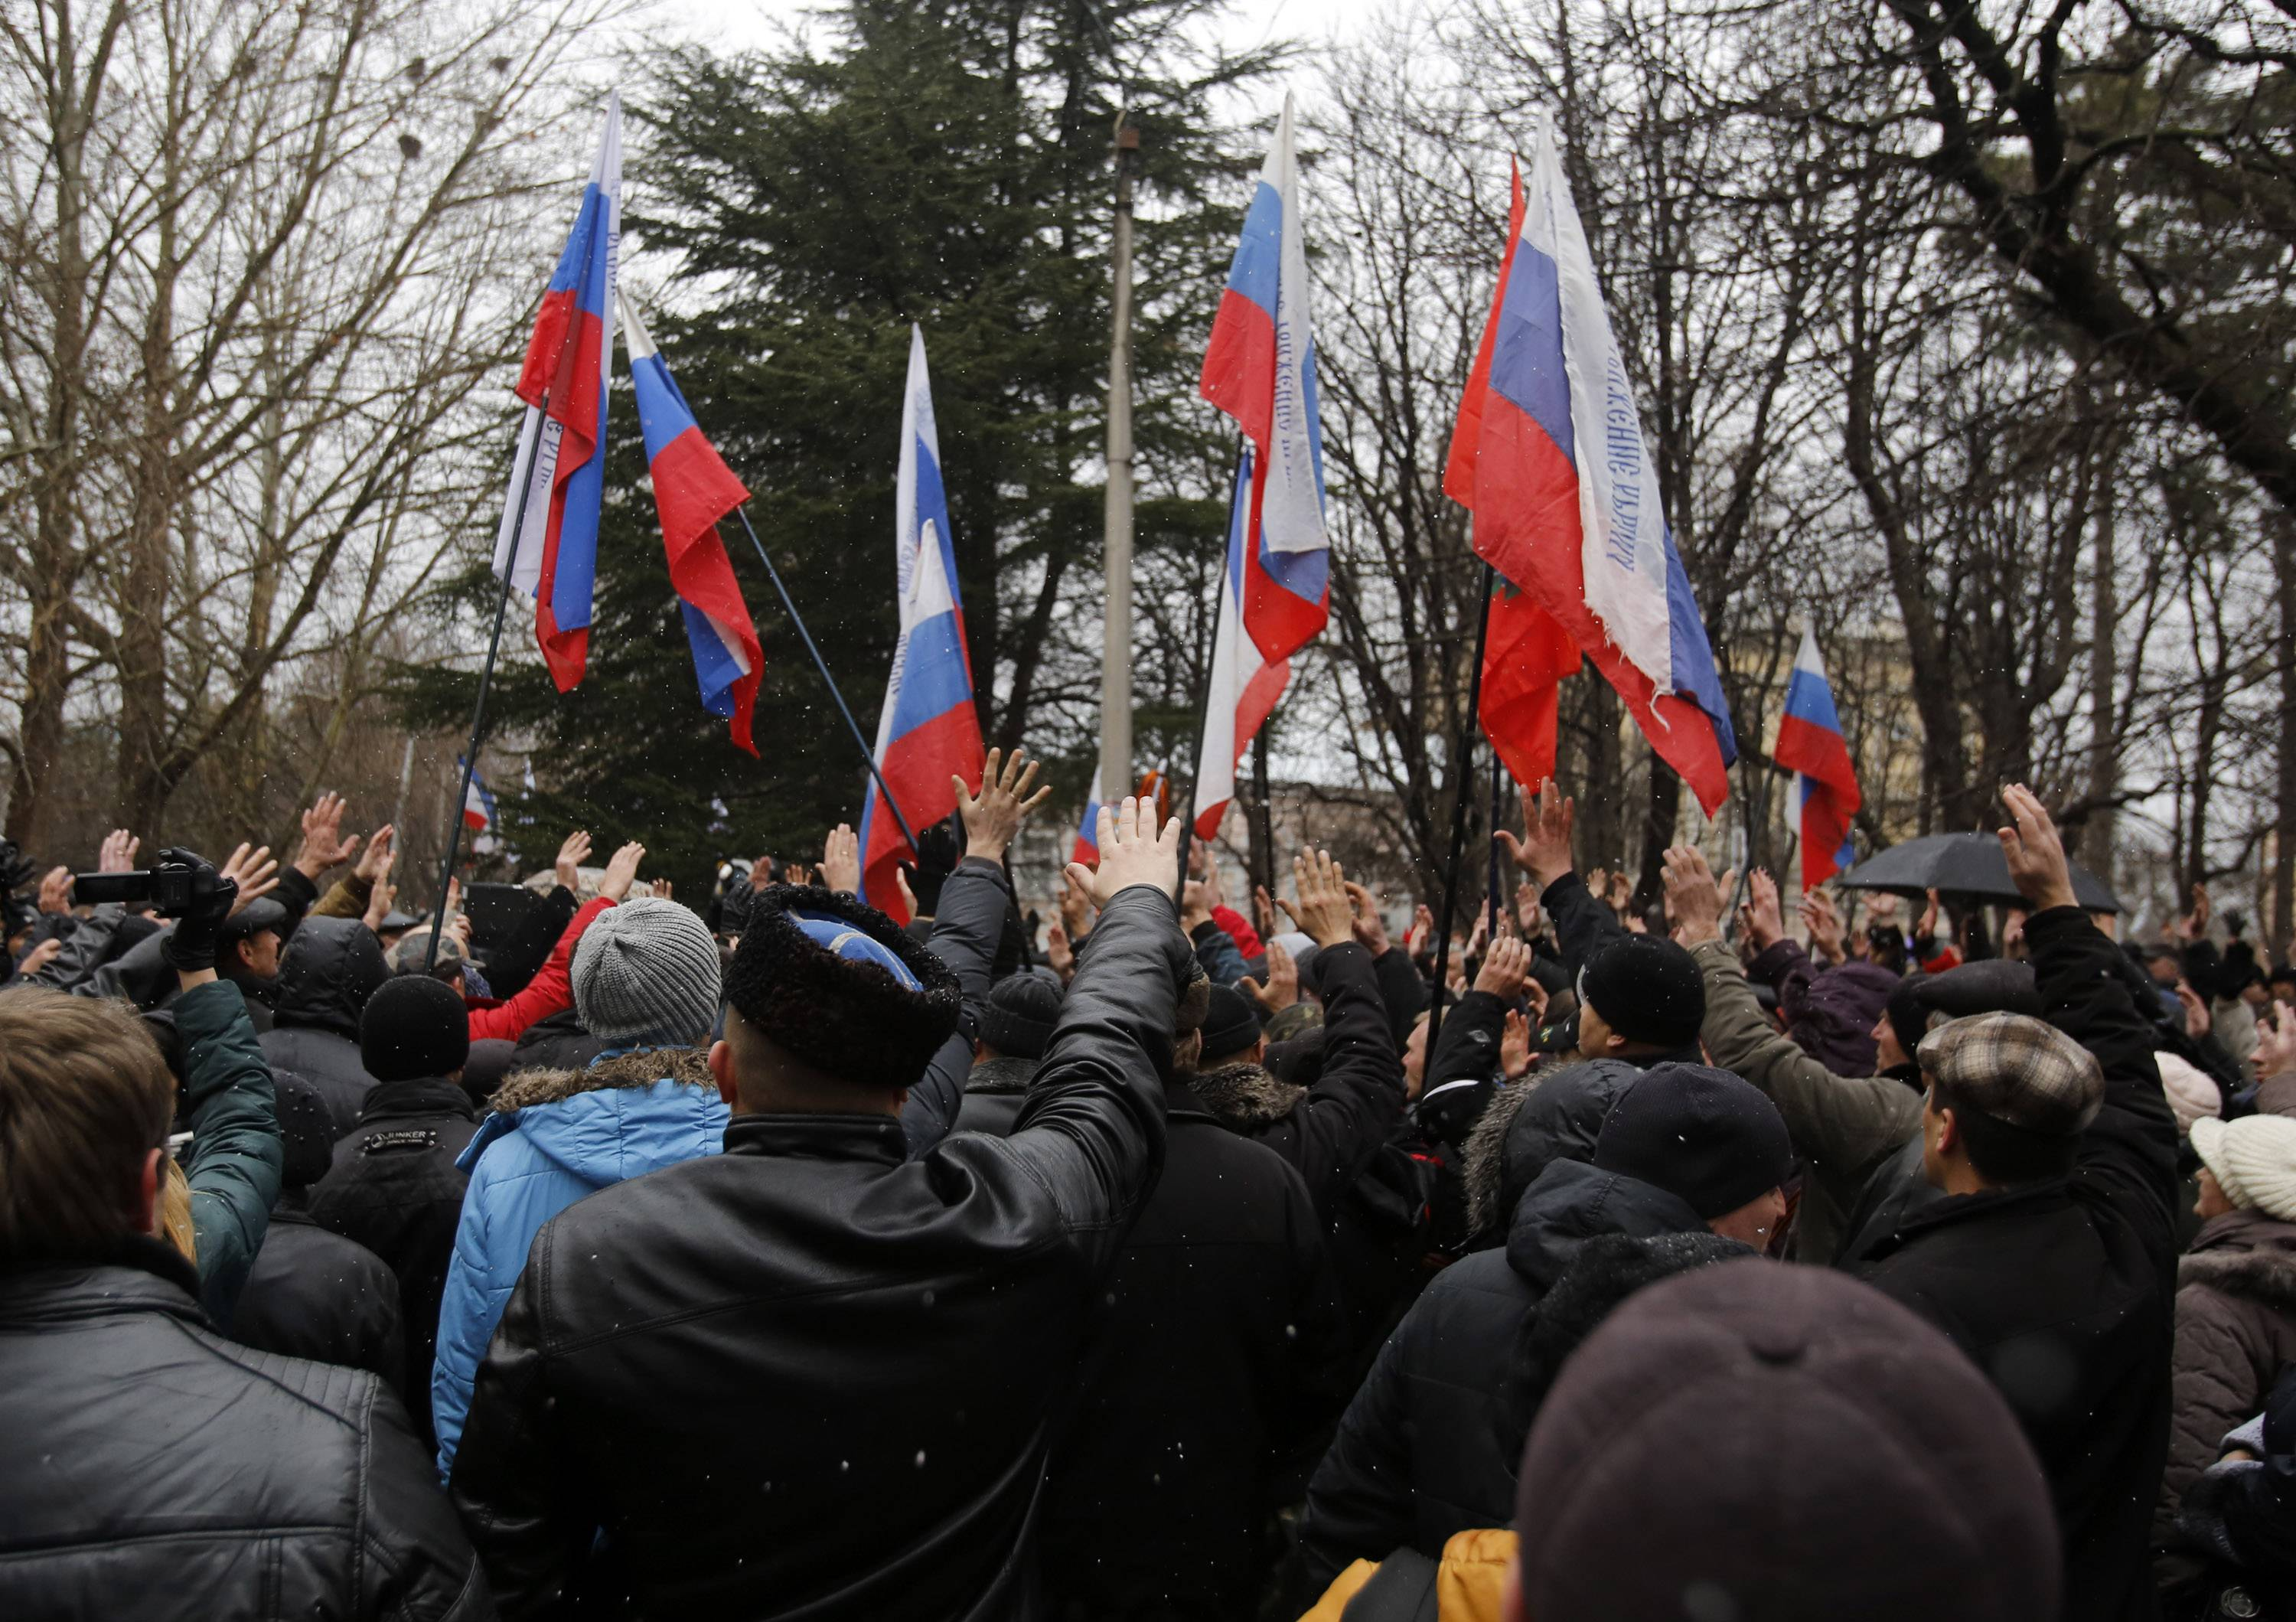 Pro-Russian demonstrators wave Russian and Crimean flags and shout slogans during a protest in front of a local government building in Simferopol, Crimea, Ukraine, Thursday.